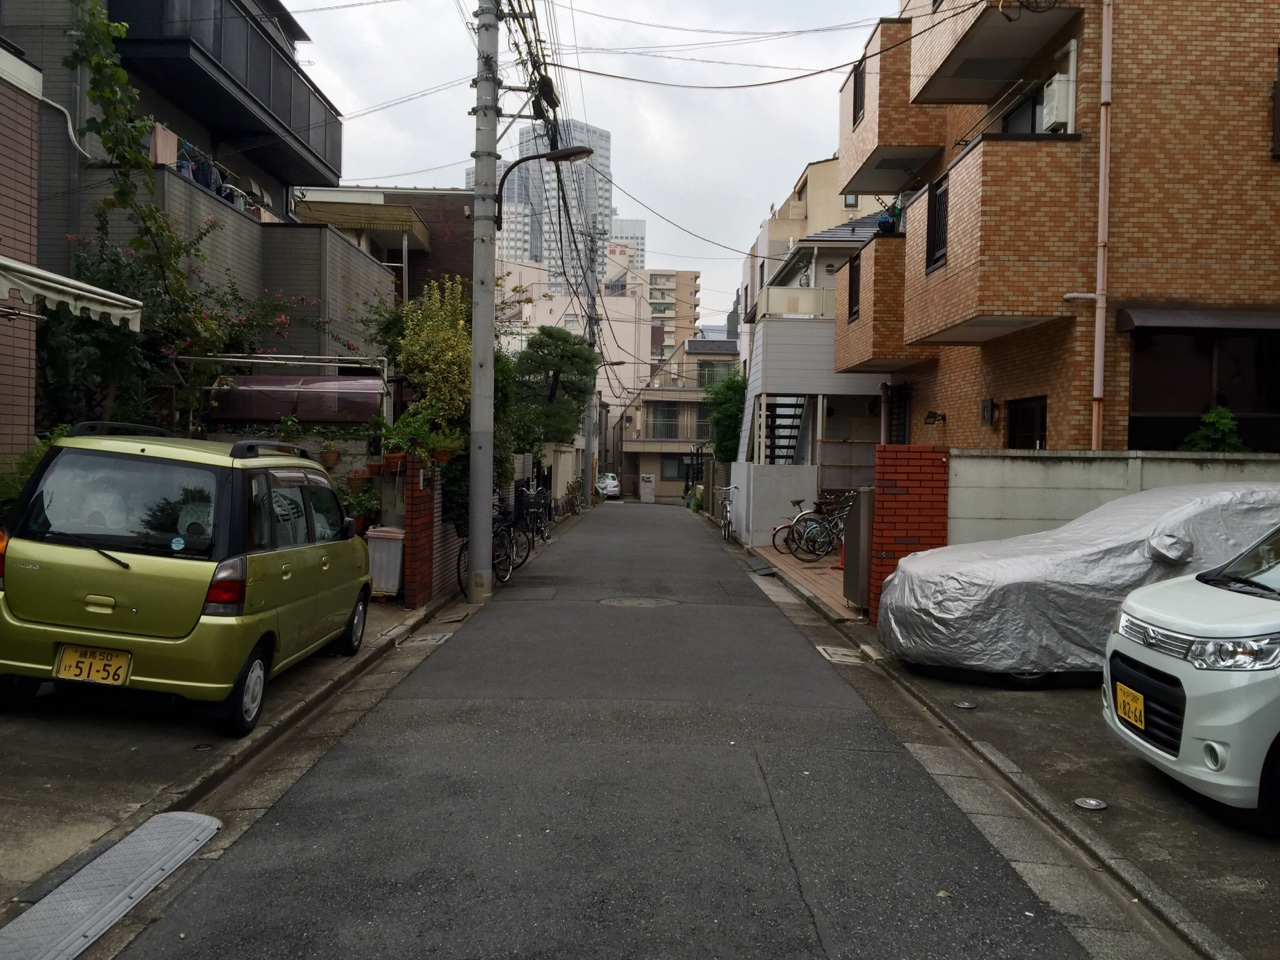 Shinjuku, Japan    This may not look like much, but it's the quiet street that I've been calling home while in Japan 😊 After spending so much time moving from place to place, it's nice to have a central location again. This was also my first test using AirBnB as a rental option for an extended period, and I couldn't be more pleased.    I've had the opportunity to start establishing routine (my daily walk to and from Shinjuku station from where I set out to explore Tokyo) which has been something that I feel as though I have been sorely lacking for the majority of the journey. Plus, it doesn't hurt that living in Tokyo carries a sense of genuine wish fulfillment for me. I've been wanting to do this since I was very young.    As I plan to take a stop back in the states for a few months before continuing forward, this experience is certainly making me realize what it might be like to truly *live* abroad.